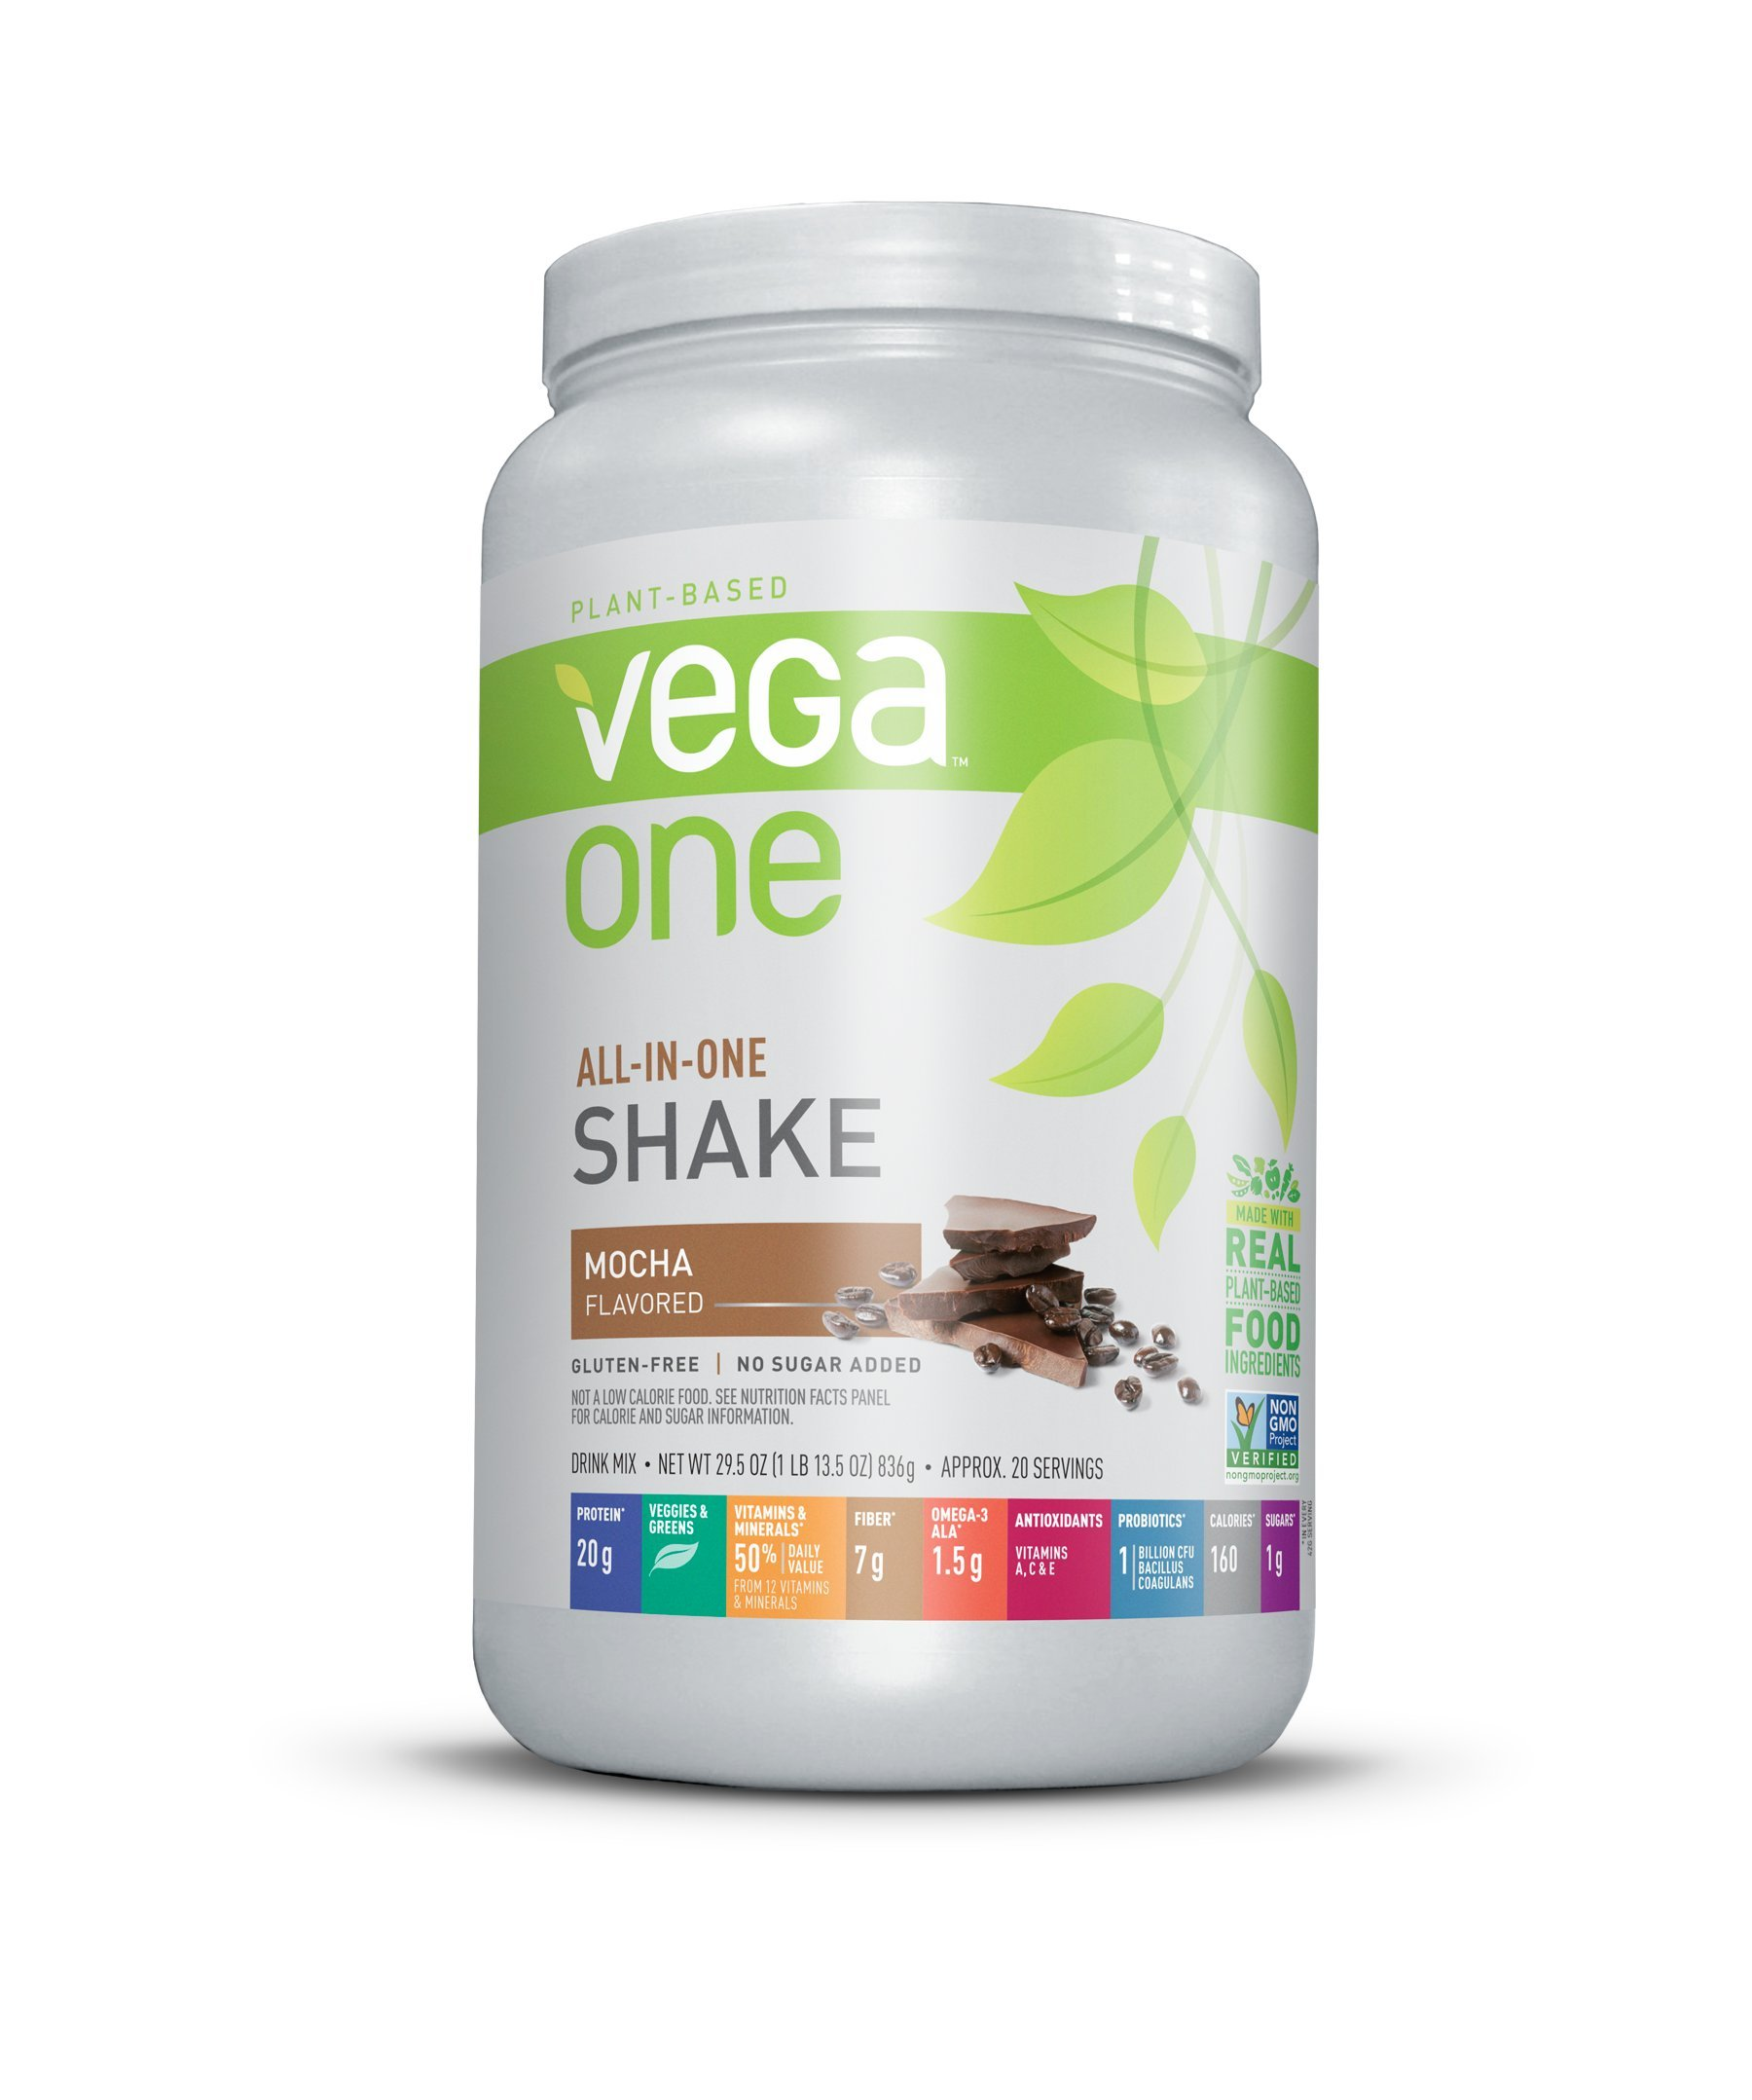 Vega One All-In-One Plant Based Protein Powder, Mocha, 1.84 lb, 20 Servings